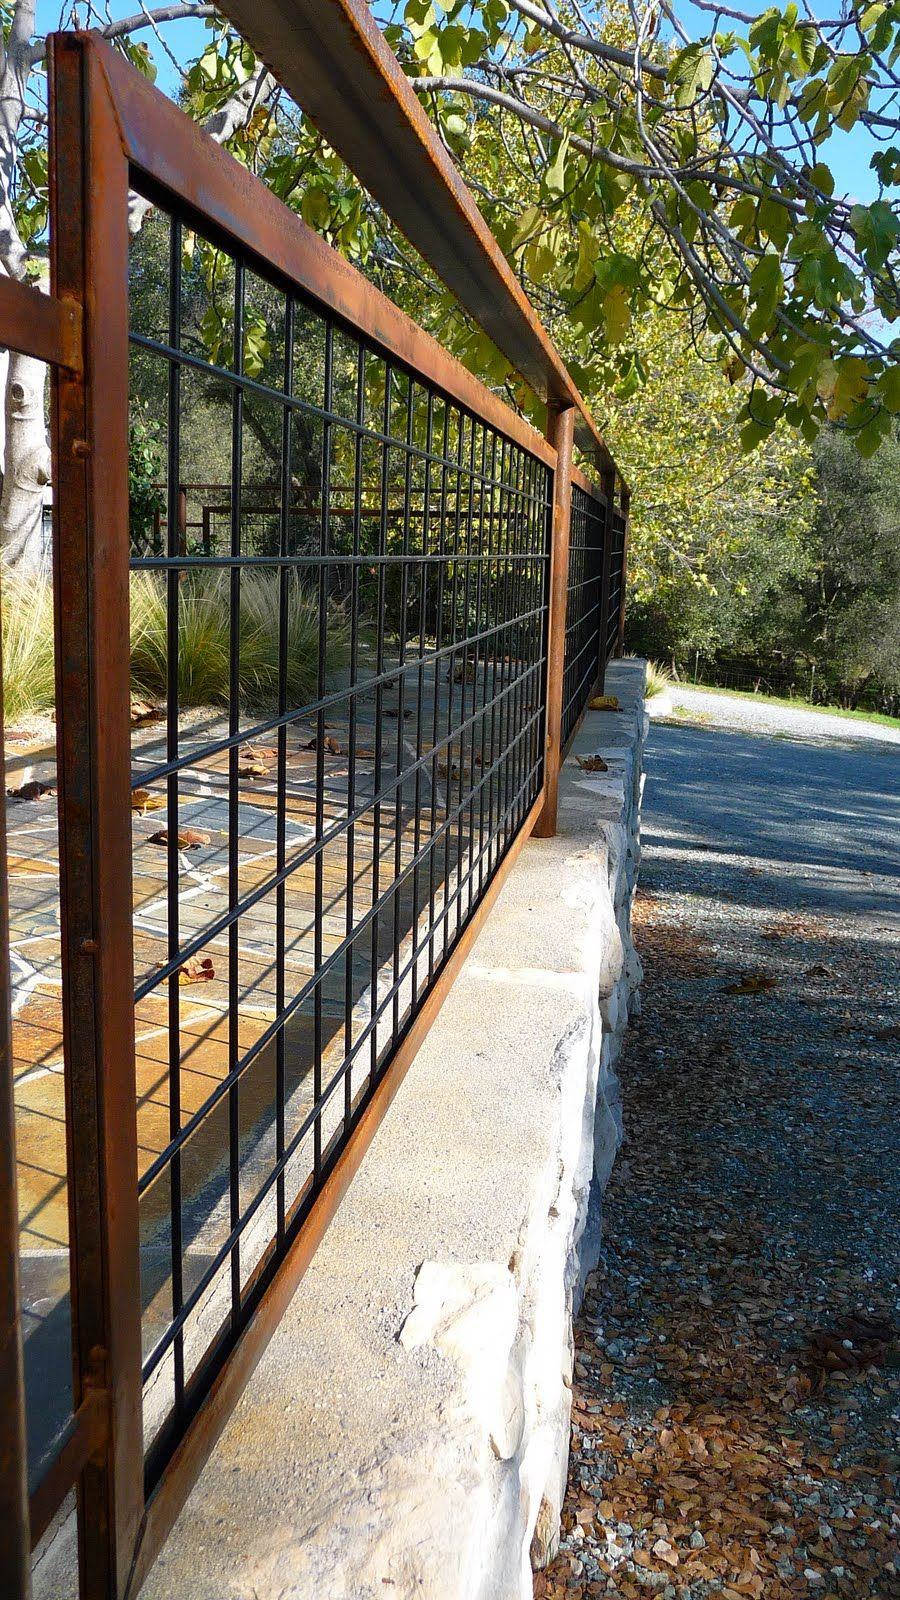 Living Iron: Hog Wire Fencing with Patina | cabin | Pinterest | Hog ...